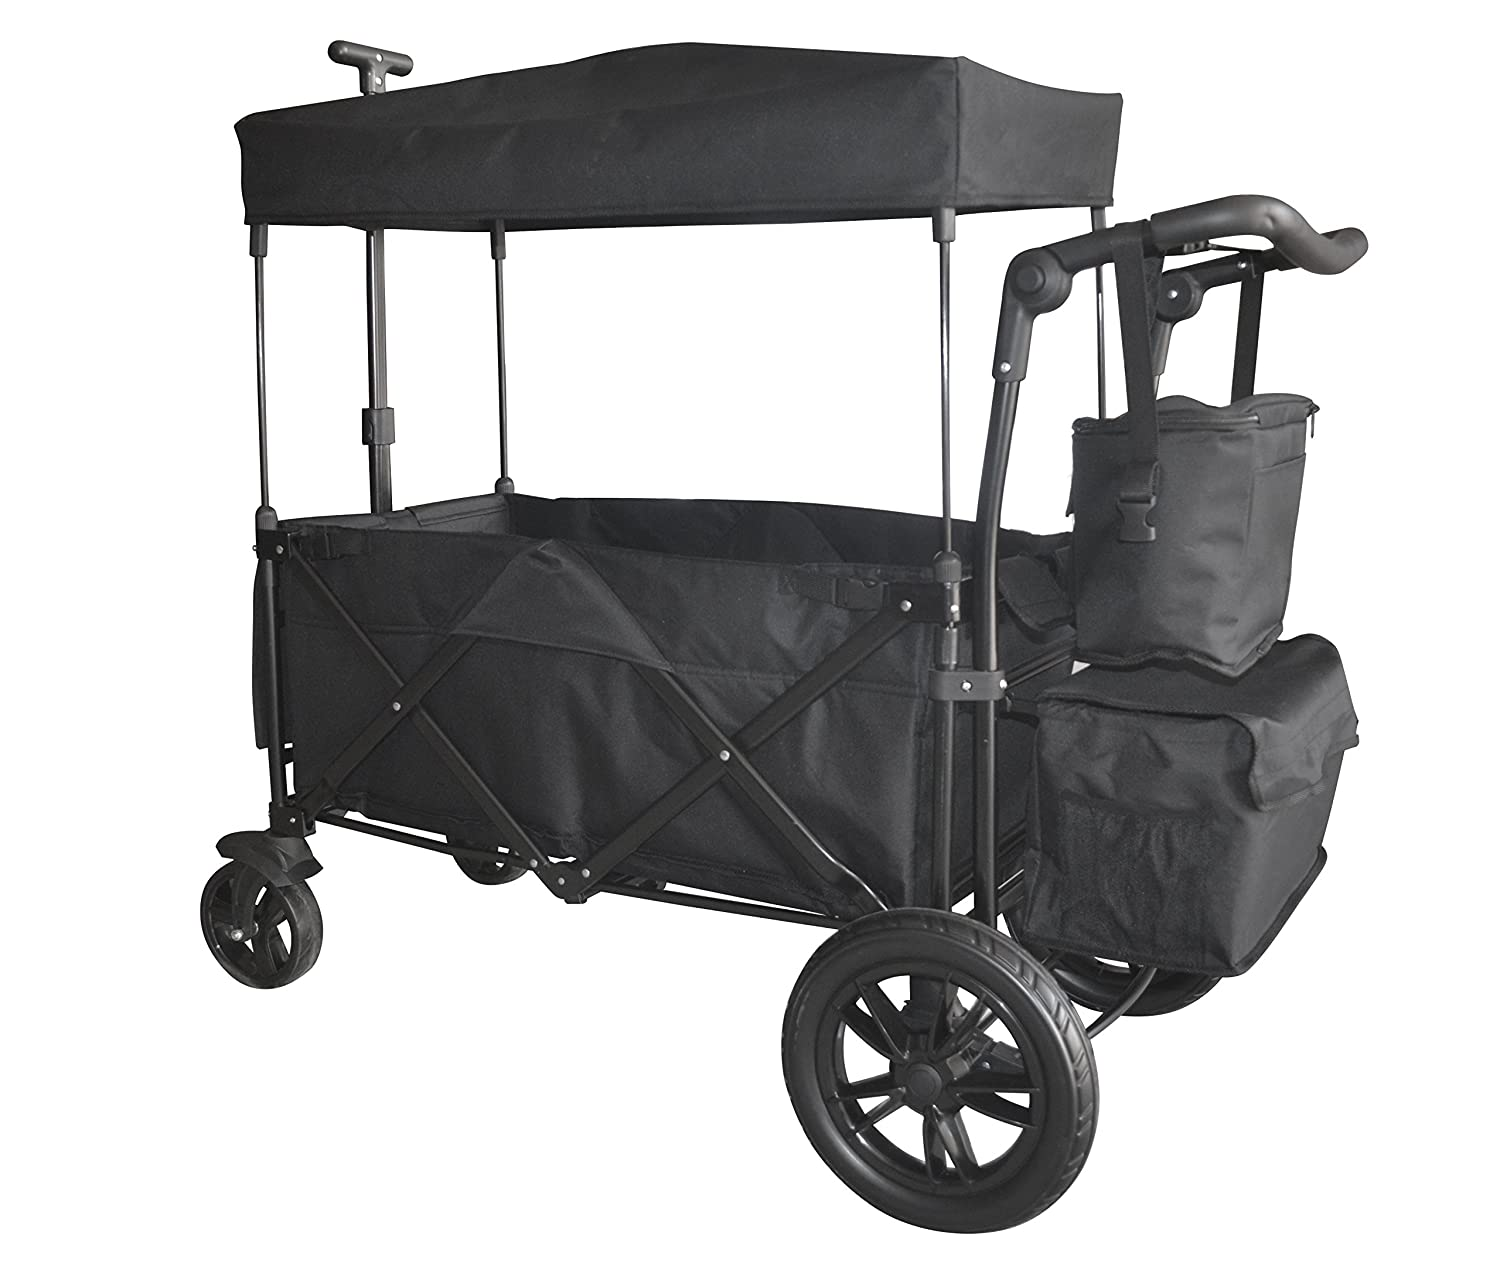 BLACK PUSH AND PULL HANDLE/FOOT BRAKE FOLDING WAGON BABY STROLLER UTILITY CARTFREE CARRYING BAG WagonBuddy